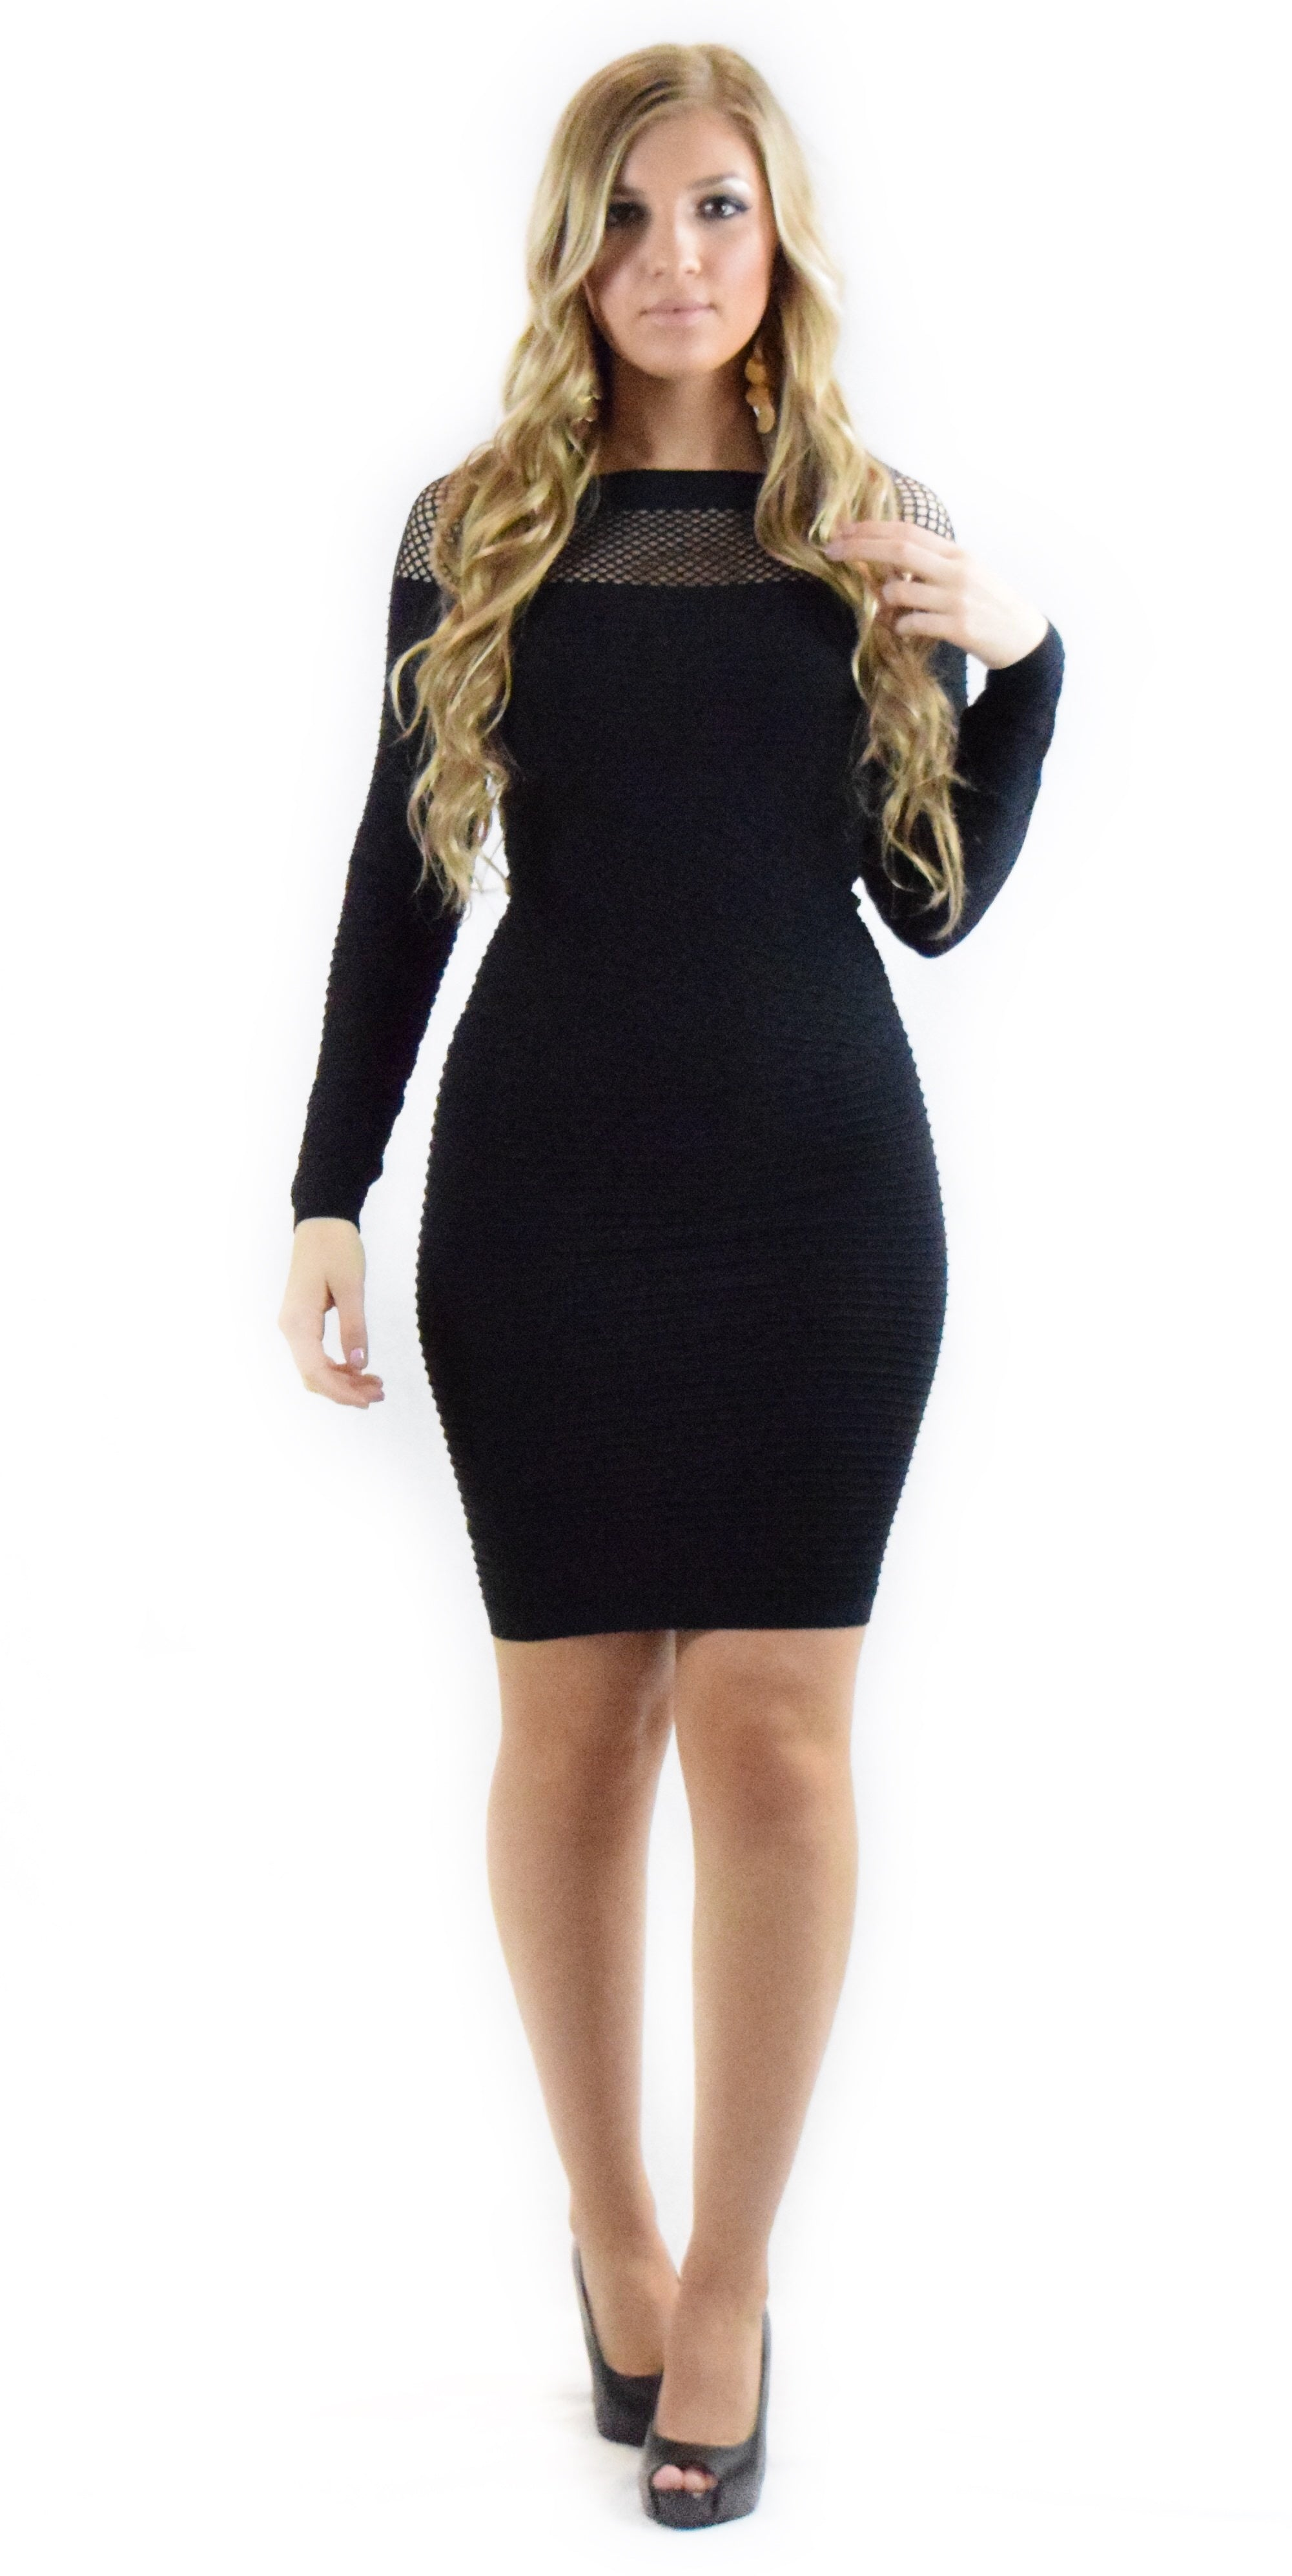 Netted Neckline Bodycon